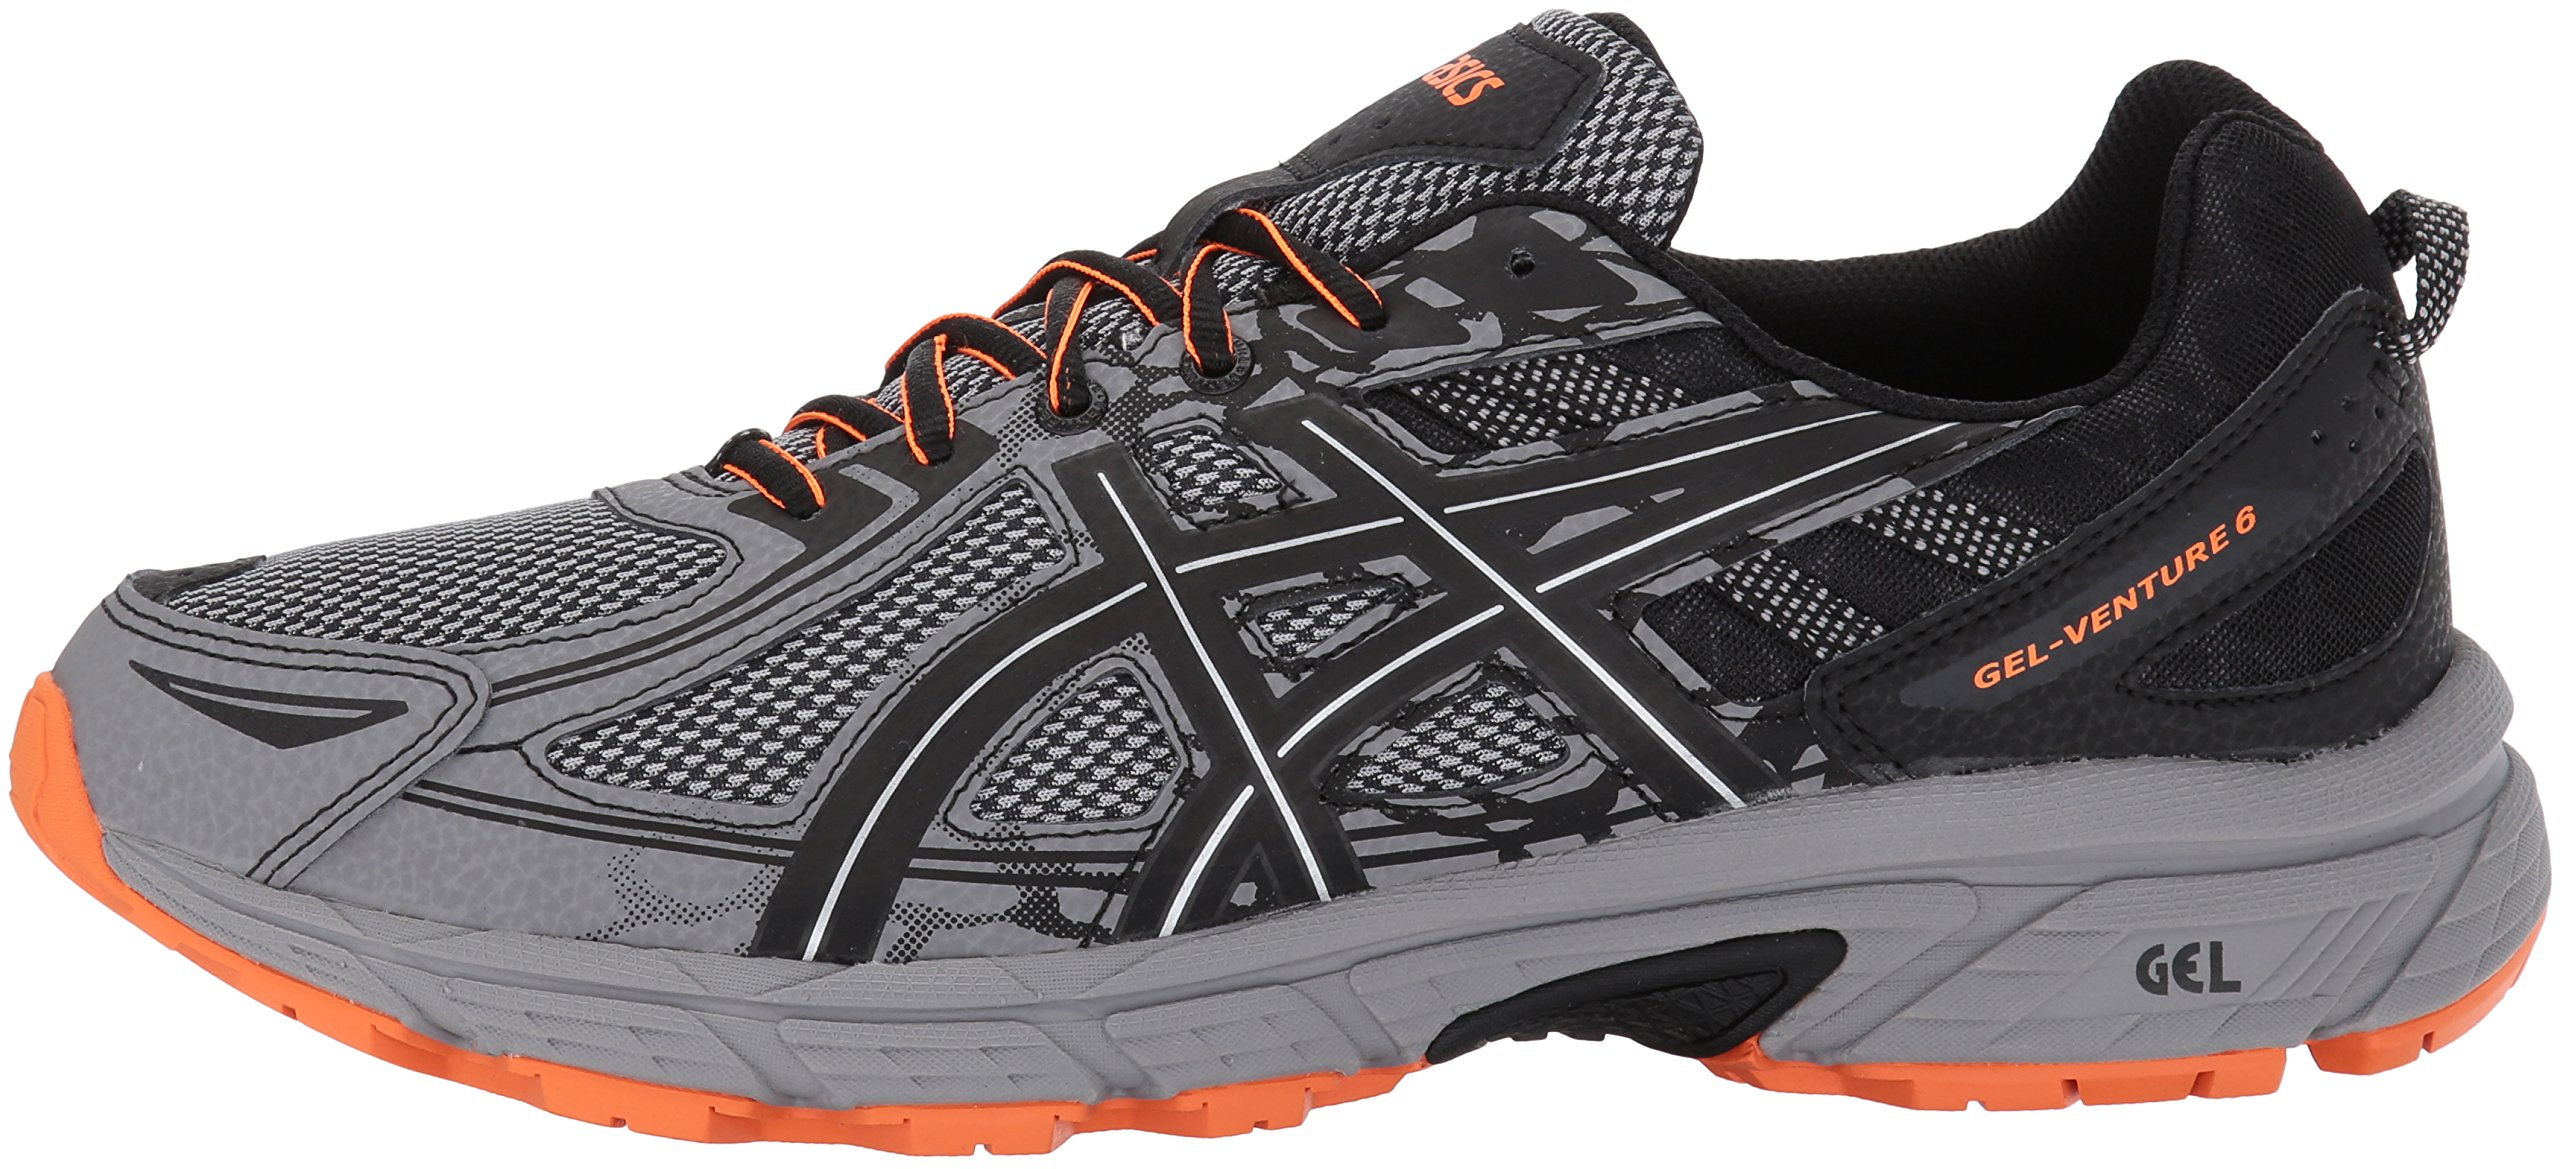 ASICS Mens Gel-Venture 6 Running Shoe, Frost Grey/Phantom/Black, 7 Medium US by ASICS (Image #5)